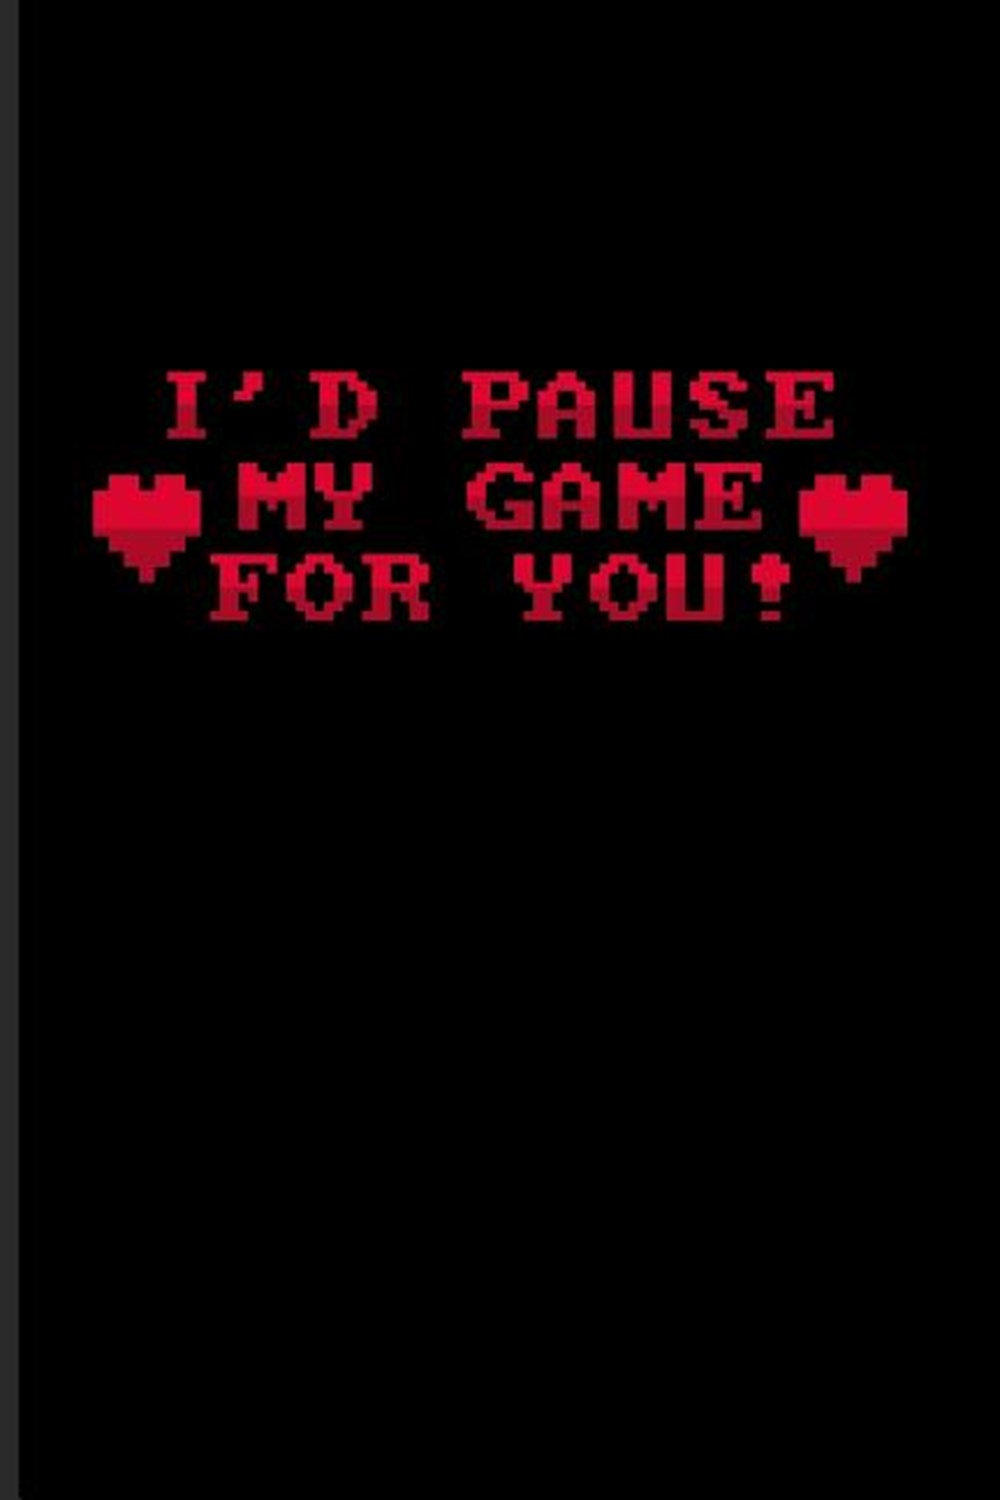 I'd Pause My Game For You! Funny Gaming Quotes Journal For Esport, Online, Video, Convention, Multip